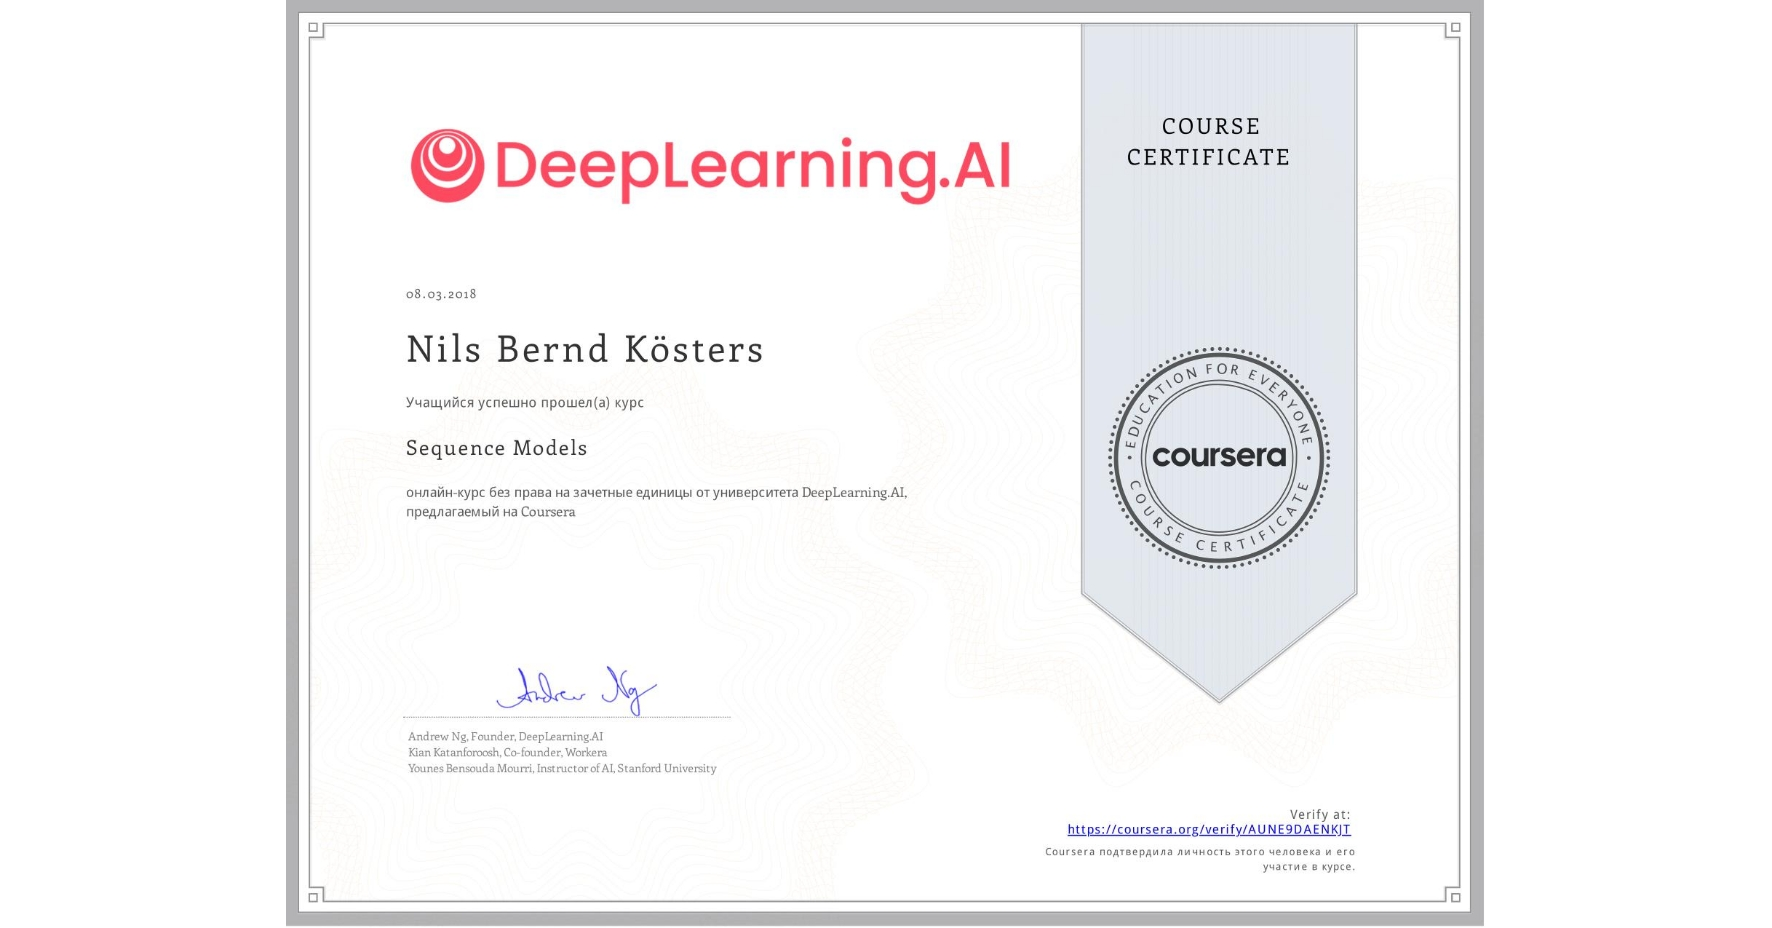 View certificate for Nils Bernd Kösters, Sequence Models, an online non-credit course authorized by DeepLearning.AI and offered through Coursera